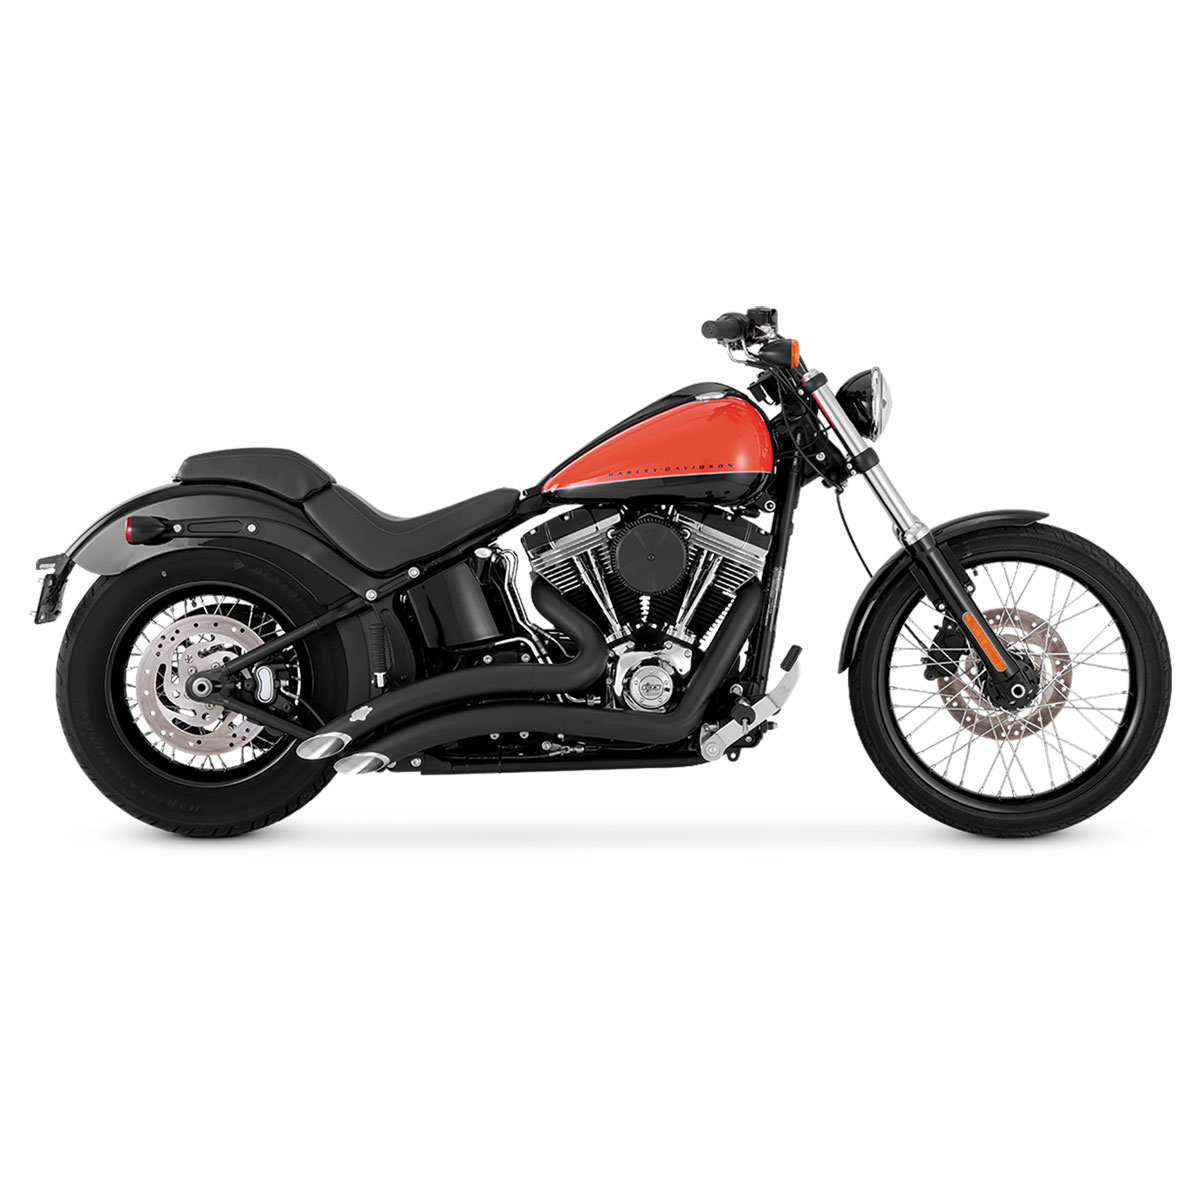 Vance & Hines Big Radius 2-into-2 Black Exhaust System